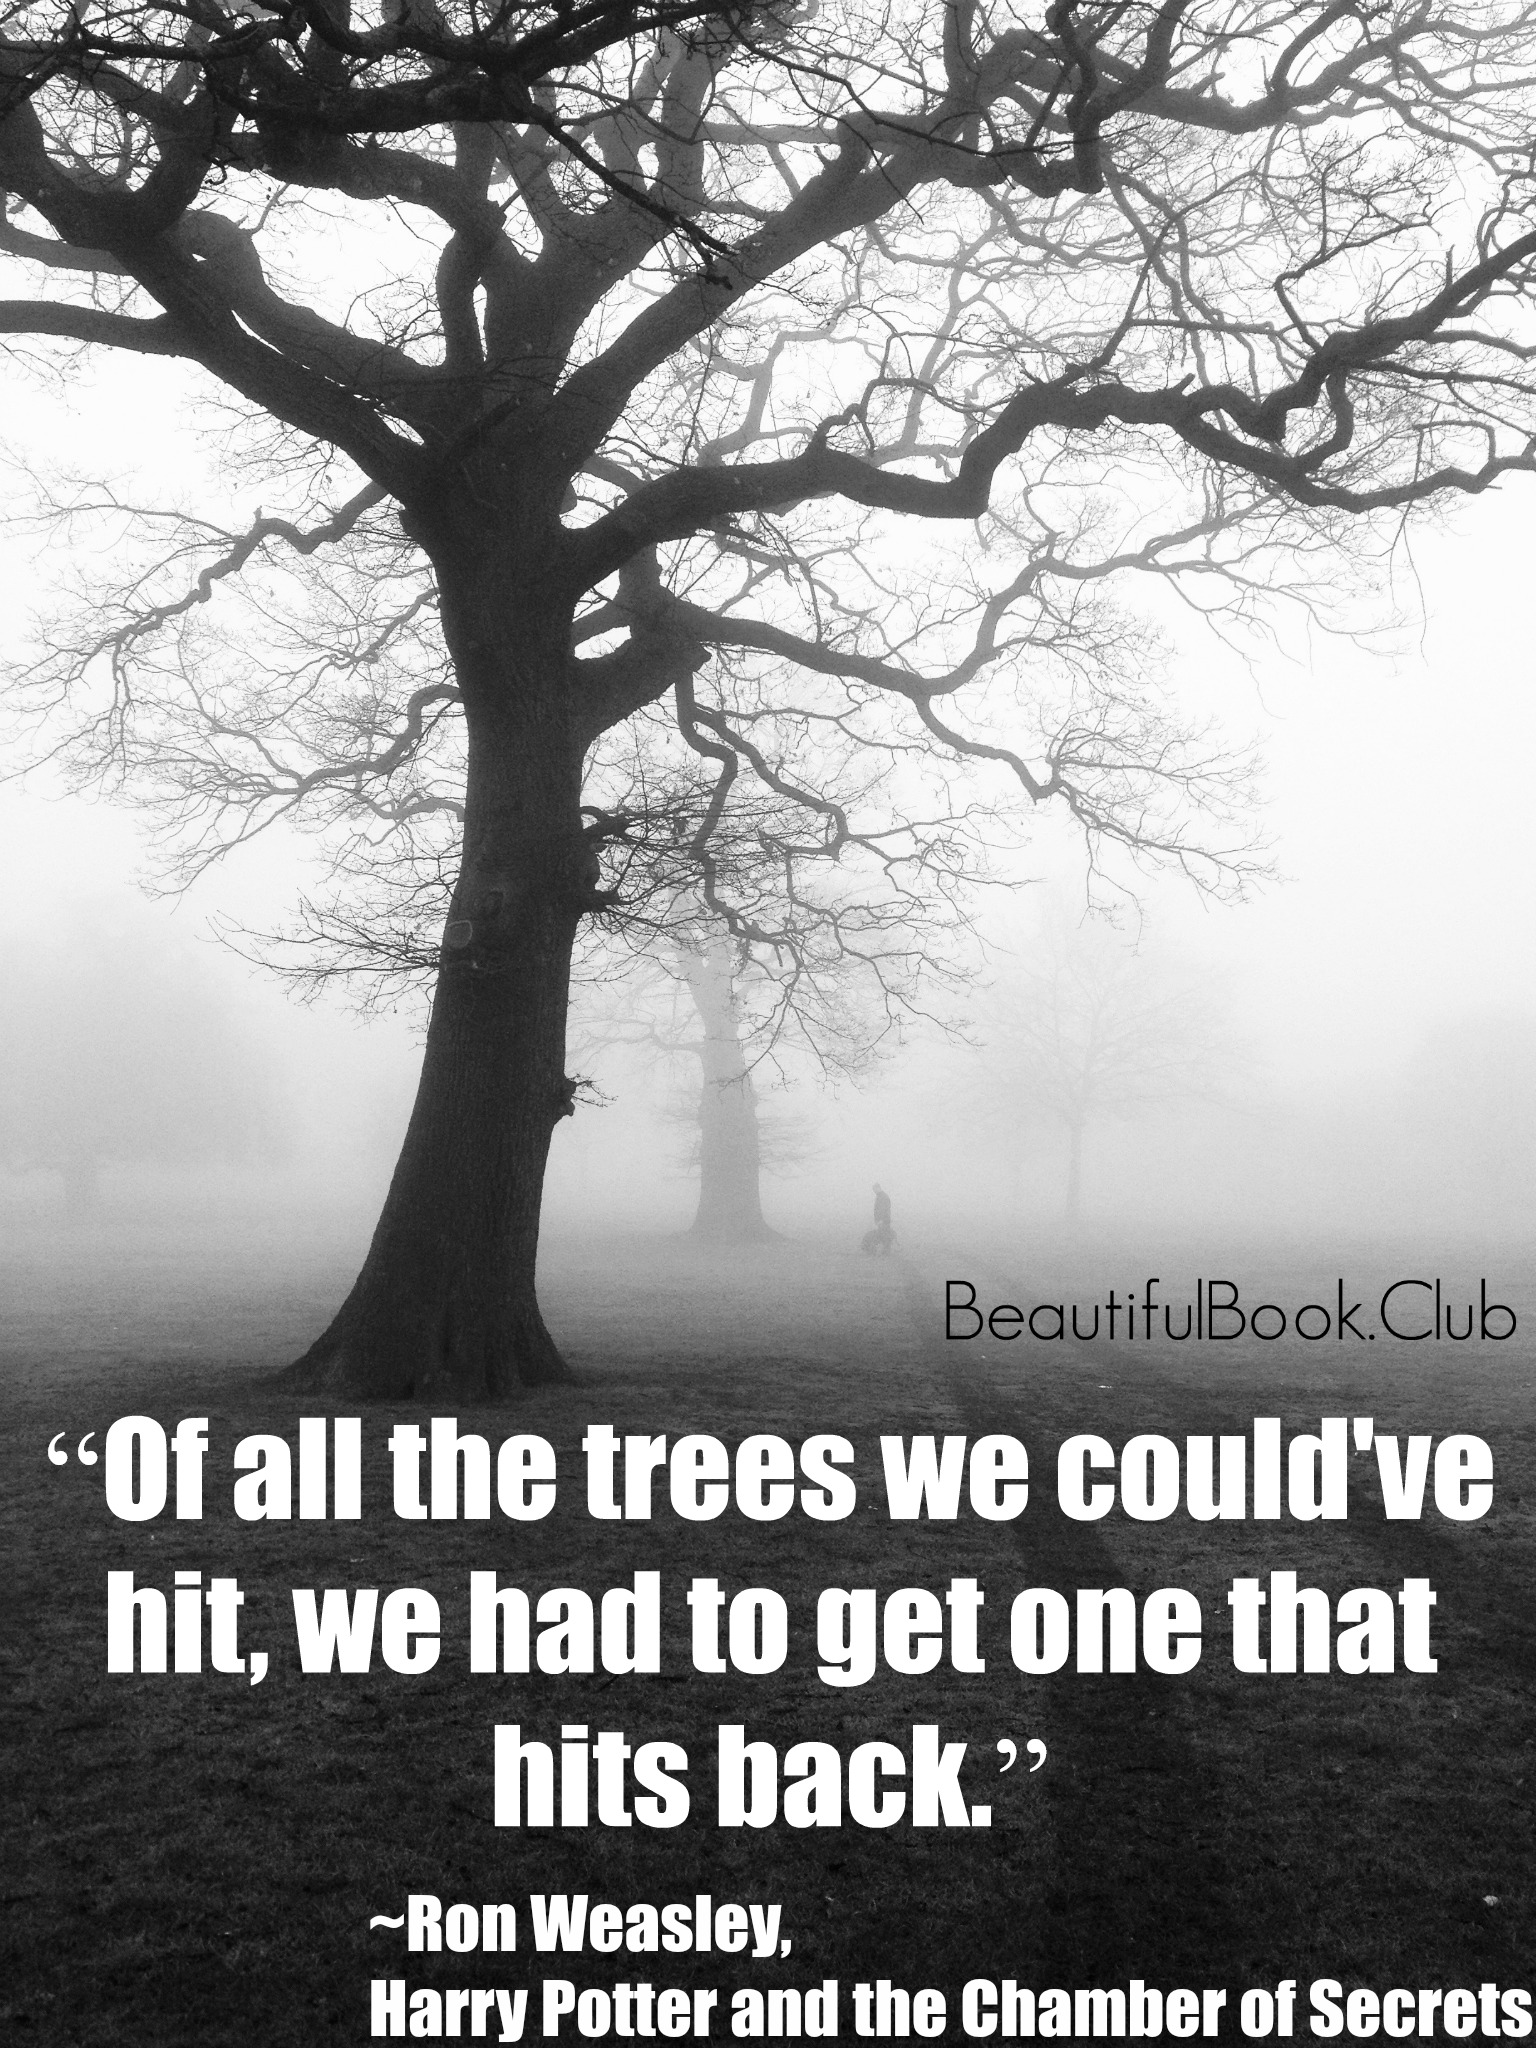 Of all the trees we could've hit, we had to get one that hits back. -Ron Weasley, Harry Potter and the Chamber Secrets